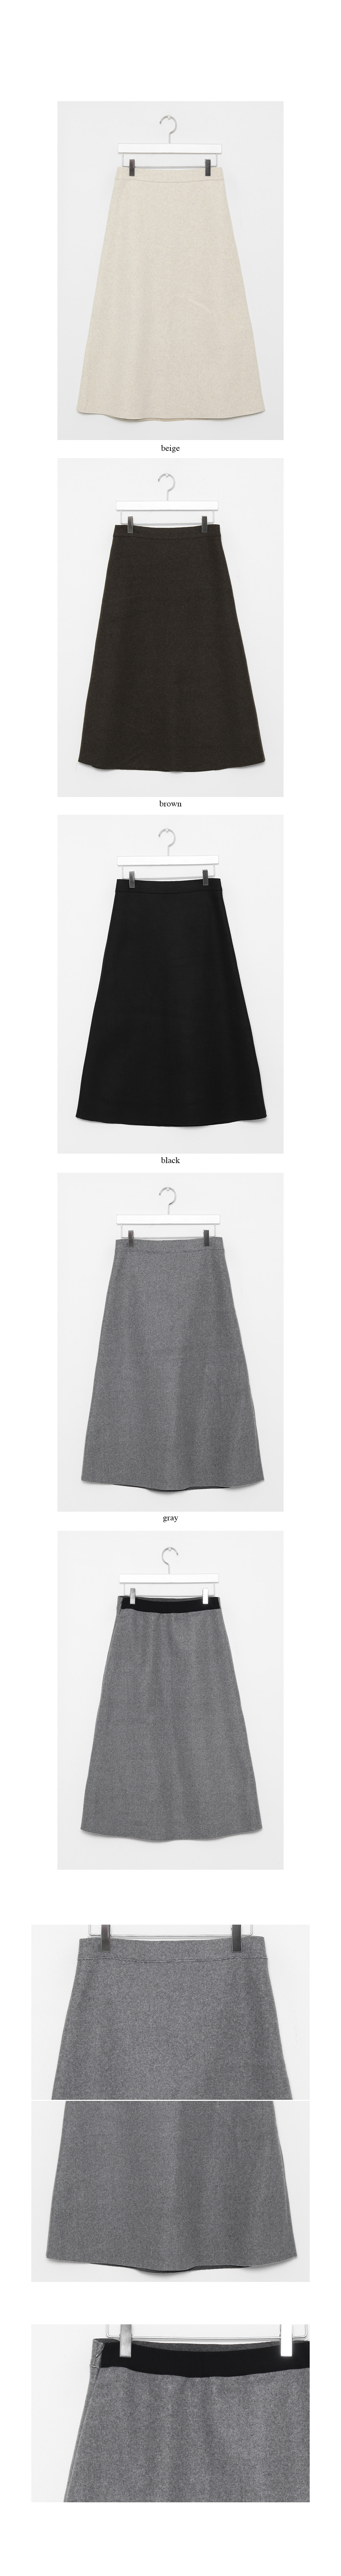 wool tension skirts